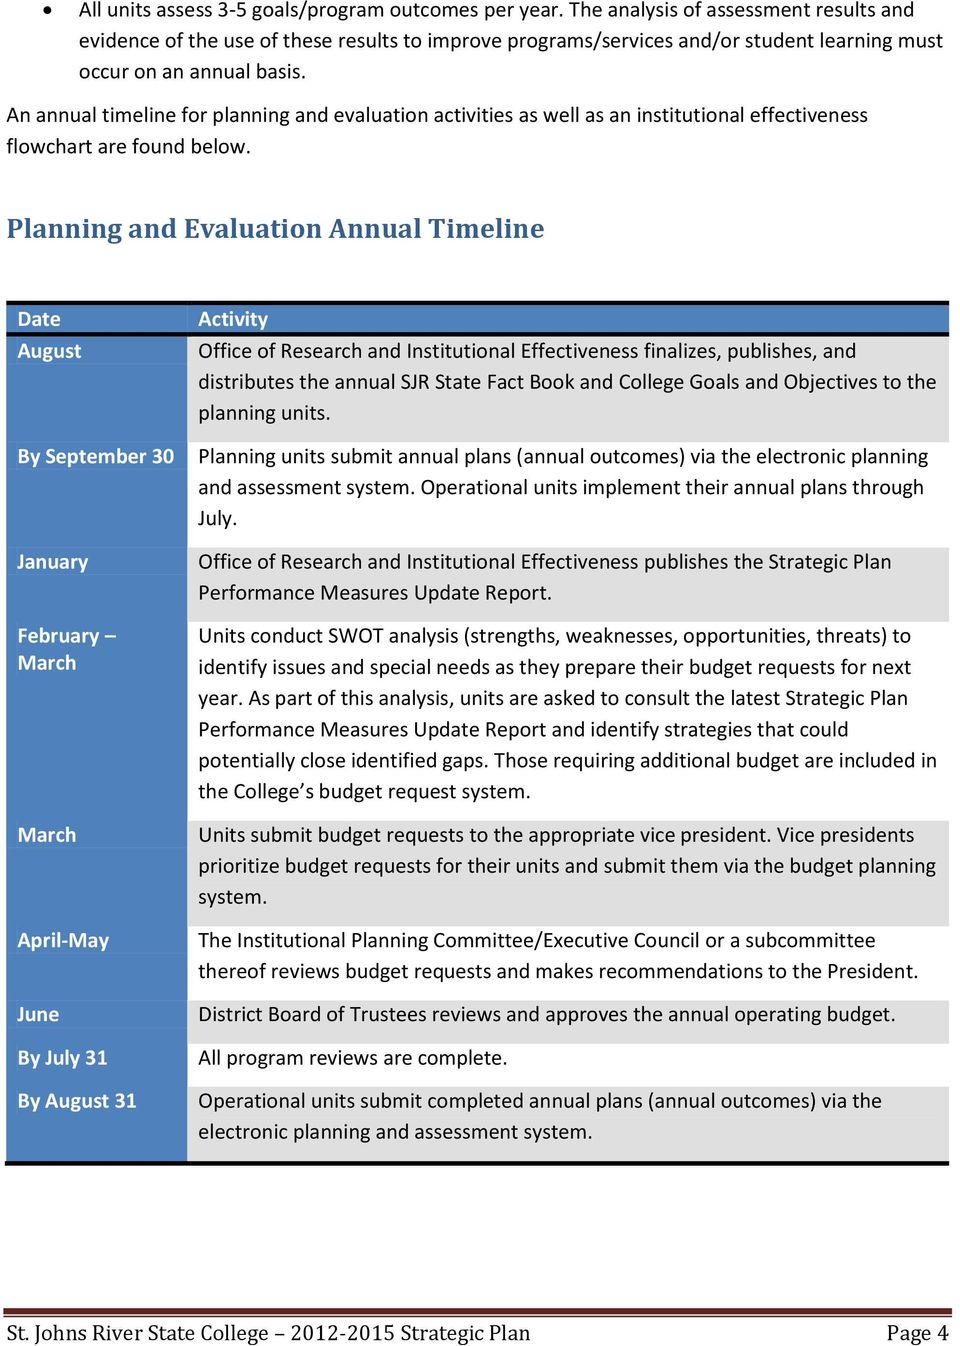 An annual timeline for planning and evaluation activities as well as an institutional effectiveness flowchart are found below.